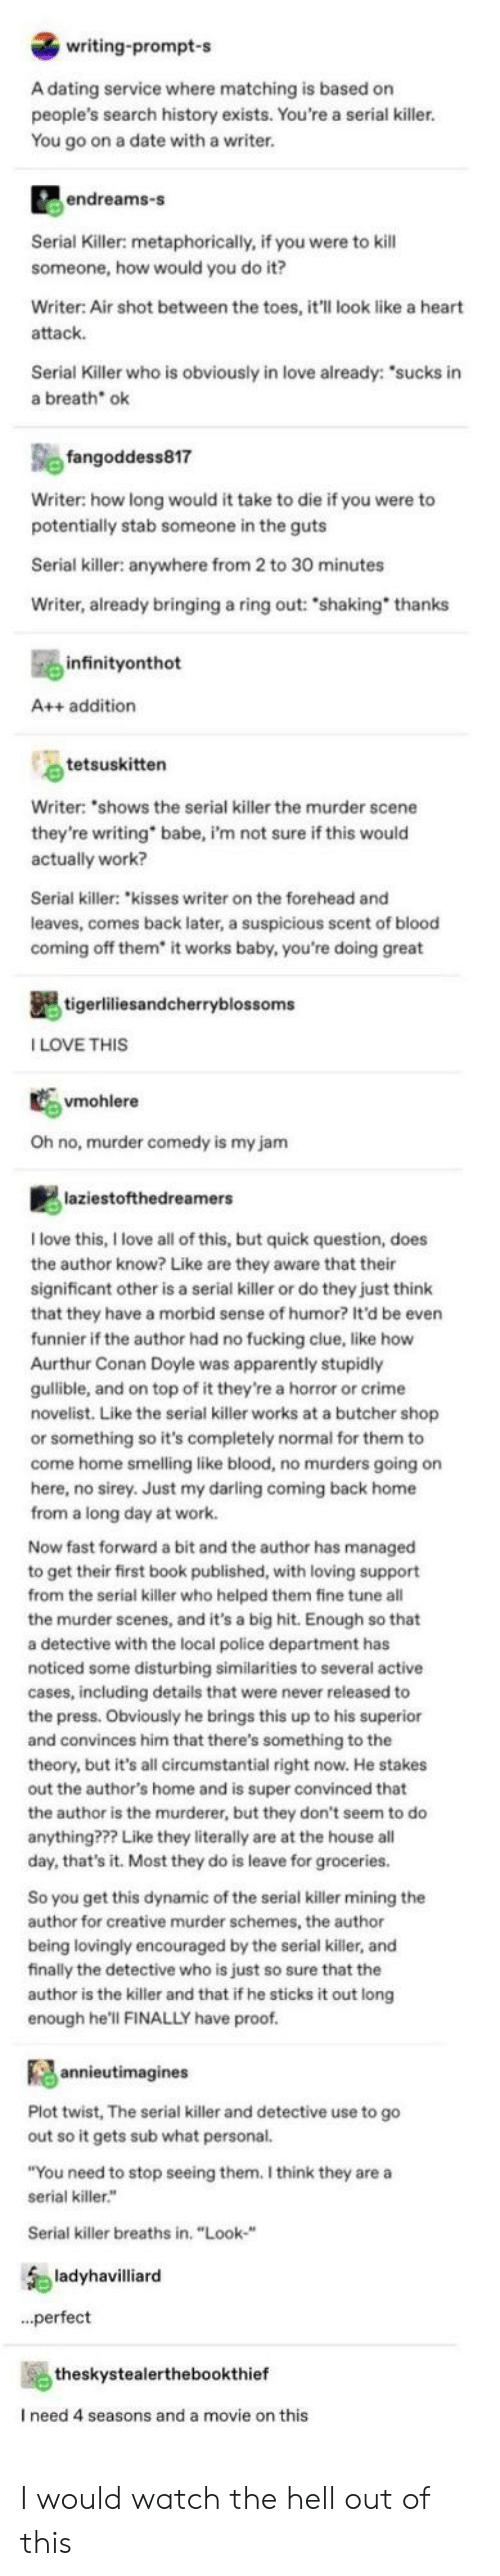 "Murderer: writing-prompt-s  A dating service where matching is based on  people's search history exists. You're a serial killer.  You go on a date with a writer.  endreams-s  Serial Killer: metaphorically, if you were to kill  someone, how would you do it?  Writer: Air shot between the toes, it'll look like a heart  attack  Serial Killer who is obviously in love already: ""sucks in  a breath ok  fangoddess817  Writer: how long would it take to die if you were to  potentially stab someone in the guts  Serial killer: anywhere from 2 to 30 minutes  Writer, already bringing a ring out: ""shaking thanks  infinityonthot  A++ addition  tetsuskitten  Writer: ""shows the serial killer the murder scene  they're writing  actually work?  babe, i'm not sure if this would  Serial killer: ""kisses writer on the forehead and  leaves, comes back later, a suspicious scent of blood  coming off them* it works baby, you're doing great  tigerliliesandcherryblossoms  ILOVE THIS  vmohlere  Oh no, murder comedy is my jam  laziestofthedreamers  Ilove this, I love all of this, but quick question, does  the author know? Like are they aware that their  significant other is a serial killer or do they just think  that they have a morbid sense of humor? It'd be even  funnier if the author had no fucking clue, like how  Aurthur Conan Doyle was apparently stupidly  gulible, and on top of it they're a horror or crime  novelist. Like the serial killer works at a butcher shop  or something so it's completely normal for them to  come home smelling like blood, no murders going on  here, no sirey. Just my darling coming back home  from a long day at work.  Now fast forward a bit and the author has managed  to get their first book published, with loving support  from the serial killer who helped them fine tune all  the murder scenes, and it's a big hit. Enough so that  a detective with the local police department has  noticed some disturbing similarities to several active  cases, including details that were never released to  the press. Obviously he brings this up to his superior  and convinces him that there's something to the  theory, but it's all circumstantial right now. He stakes  out the author's home and is super convinced that  the author is the murderer, but they don't seem to do  anything??? Like they literally are at the house all  day, that's it. Most they do is leave for groceries.  So you get this dynamic of the serial killer mining the  author for creative murder schemes, the author  being lovingly encouraged by the serial killer, and  finally the detective who is just so sure that the  author is the killer and that if he sticks it out long  enough he'll FINALLY have proof.  annieutimagines  Plot twist, The serial killer and detective use to go  out so it gets sub what personal.  ""You need to stop seeing them. I think they are a  serial killer.""  Serial killer breaths in. ""Look-""  ladyhavilliard  ..perfect  theskystealerthebookthief  I need 4 seasons and a movie on this I would watch the hell out of this"